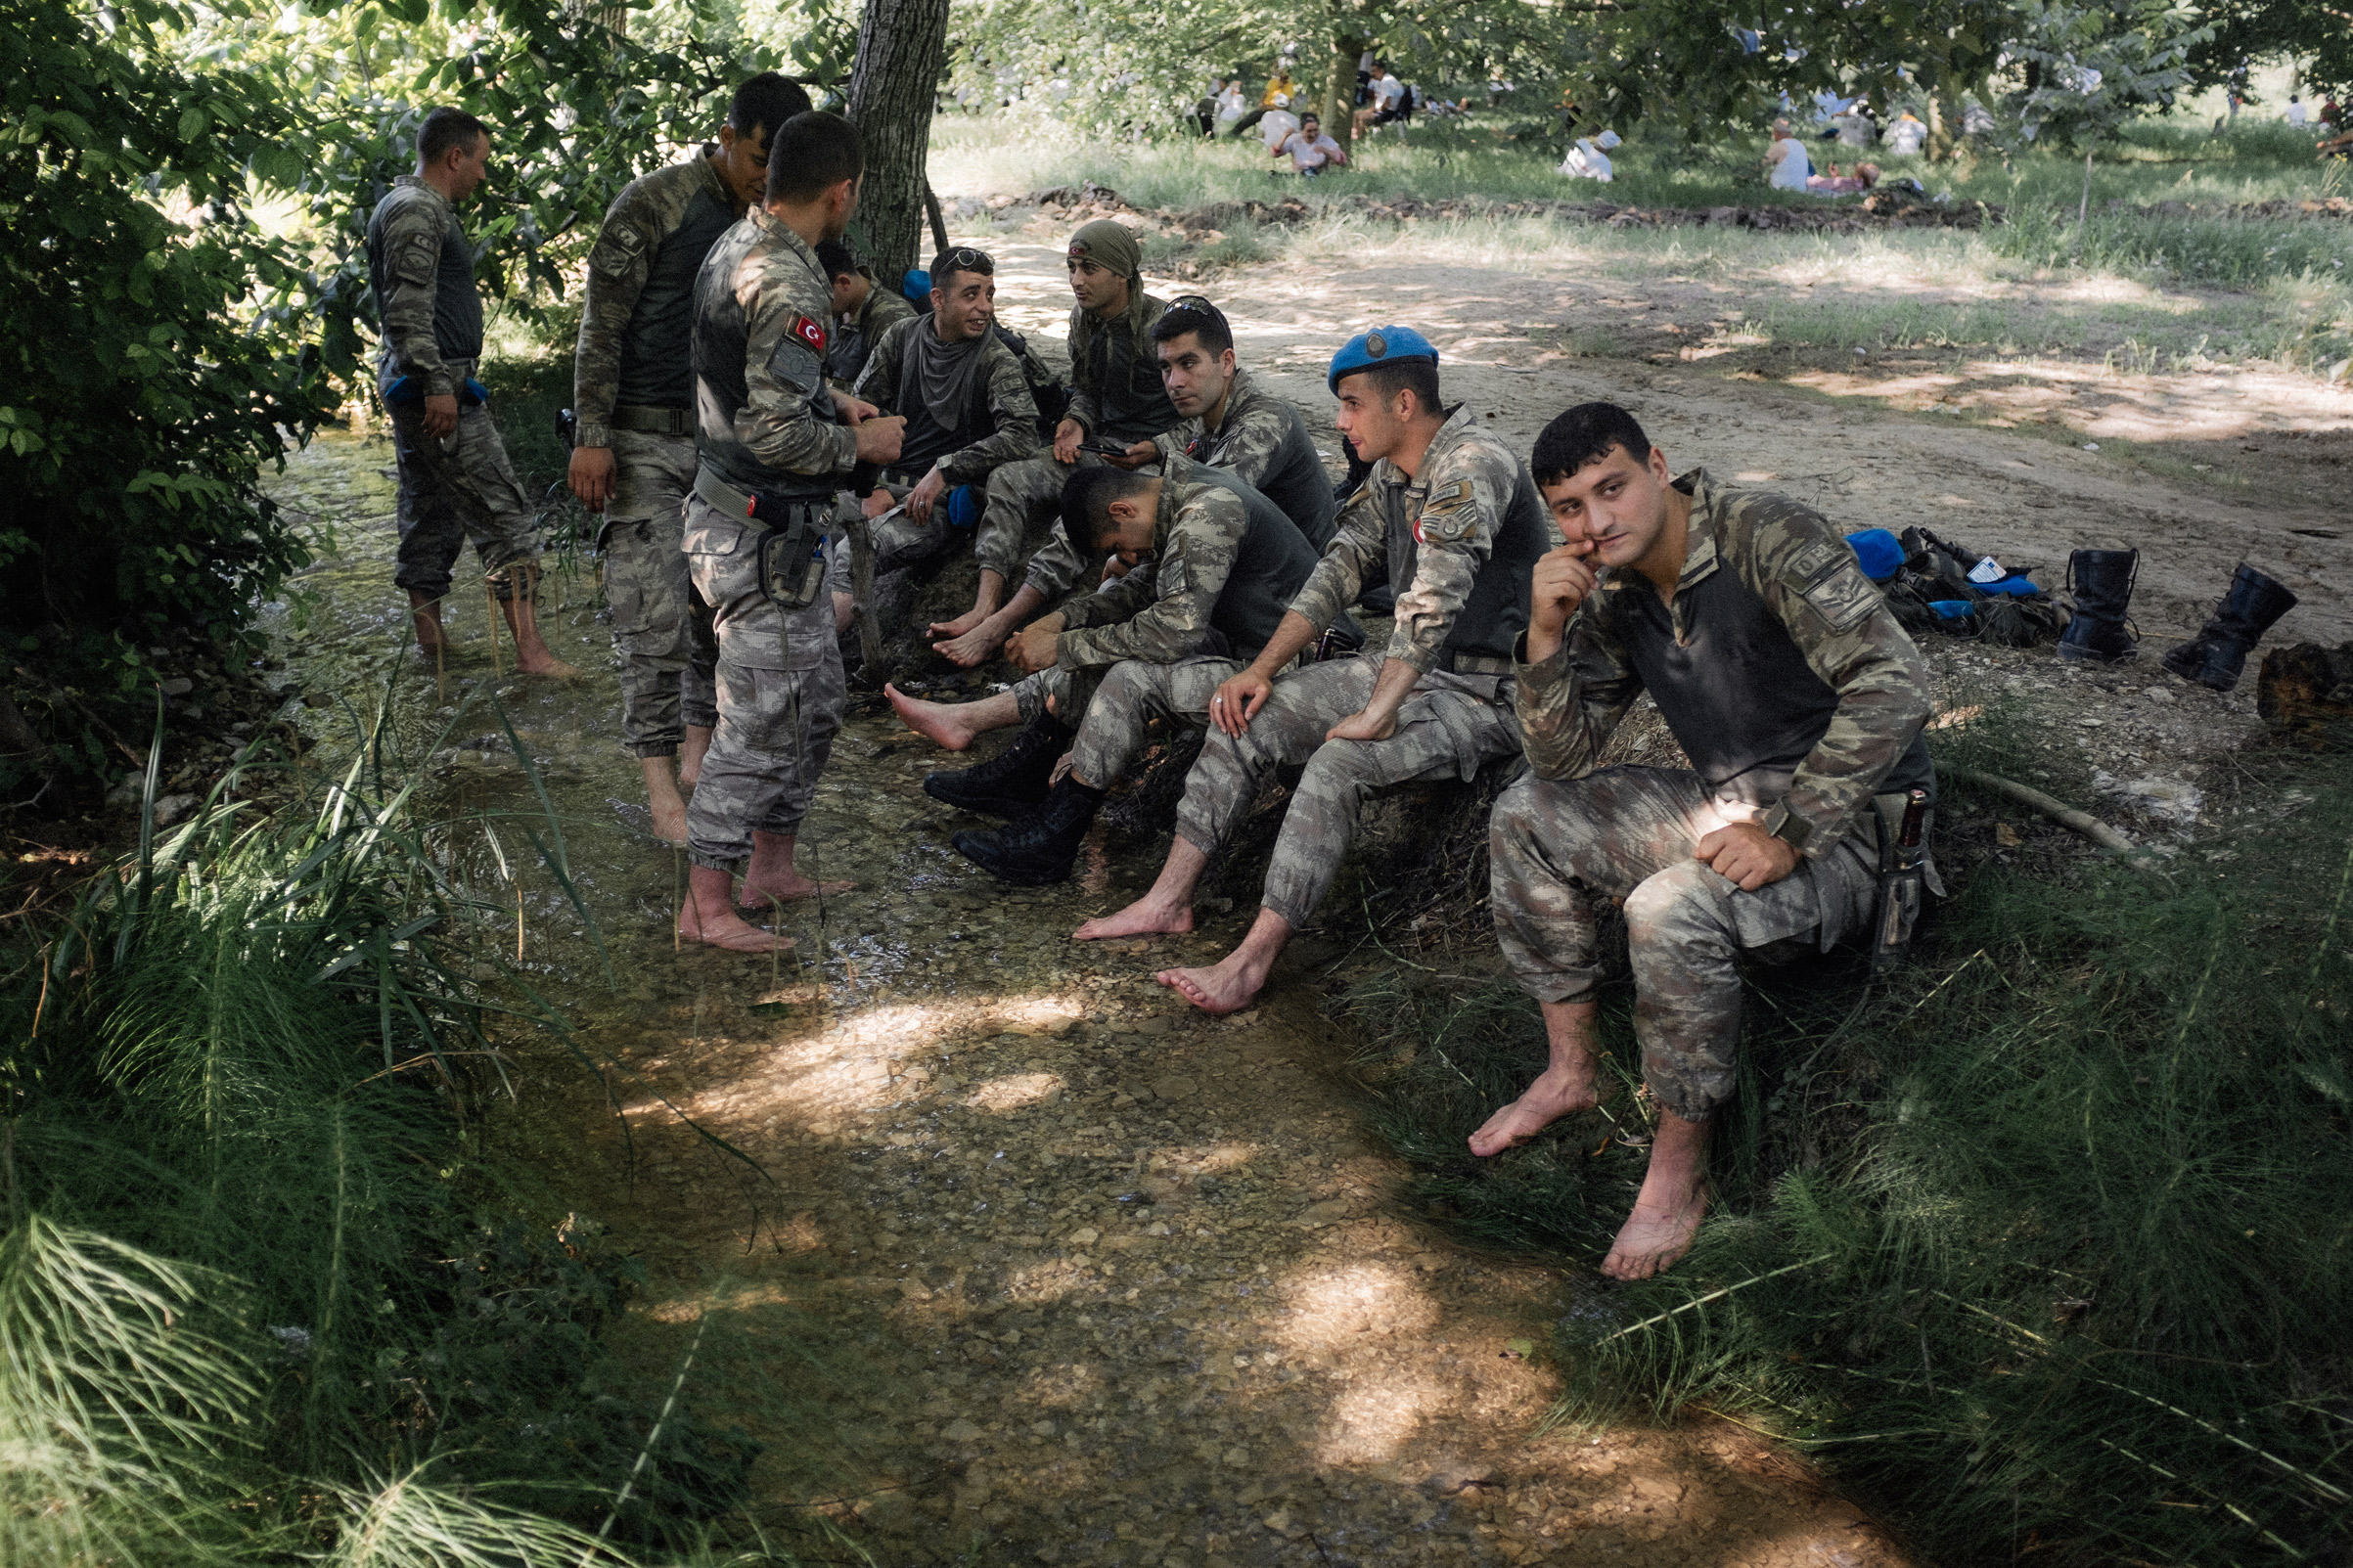 Turkish soldiers rest near a stream. Participants in the Justice March from Ankara to Istanbul also take a break nearby, Sakarya, Turkey, July 2, 2017.